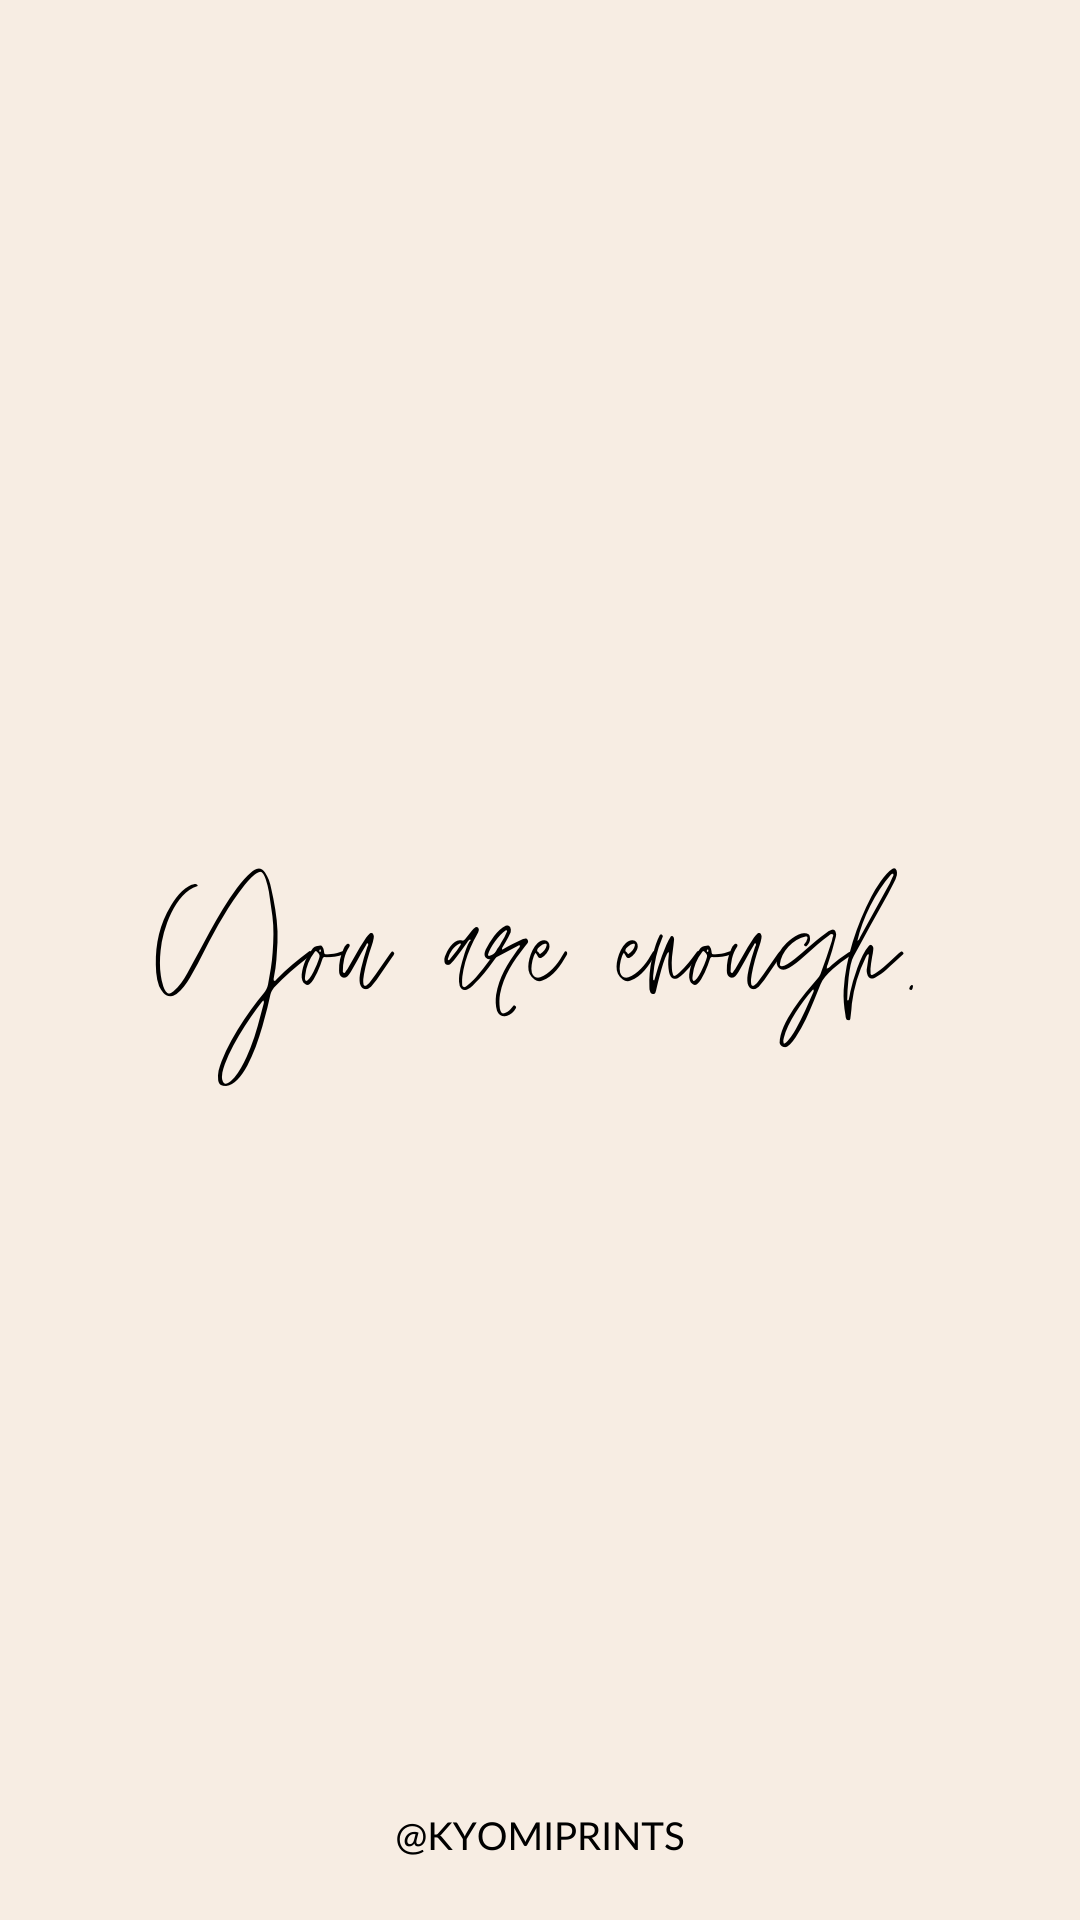 You Are Enough Wallpaper Free Wallpaper Iphone Wallpaper Pink Aesthetics Background Motivati Simple Iphone Wallpaper Minimalist Wallpaper Simple Wallpapers